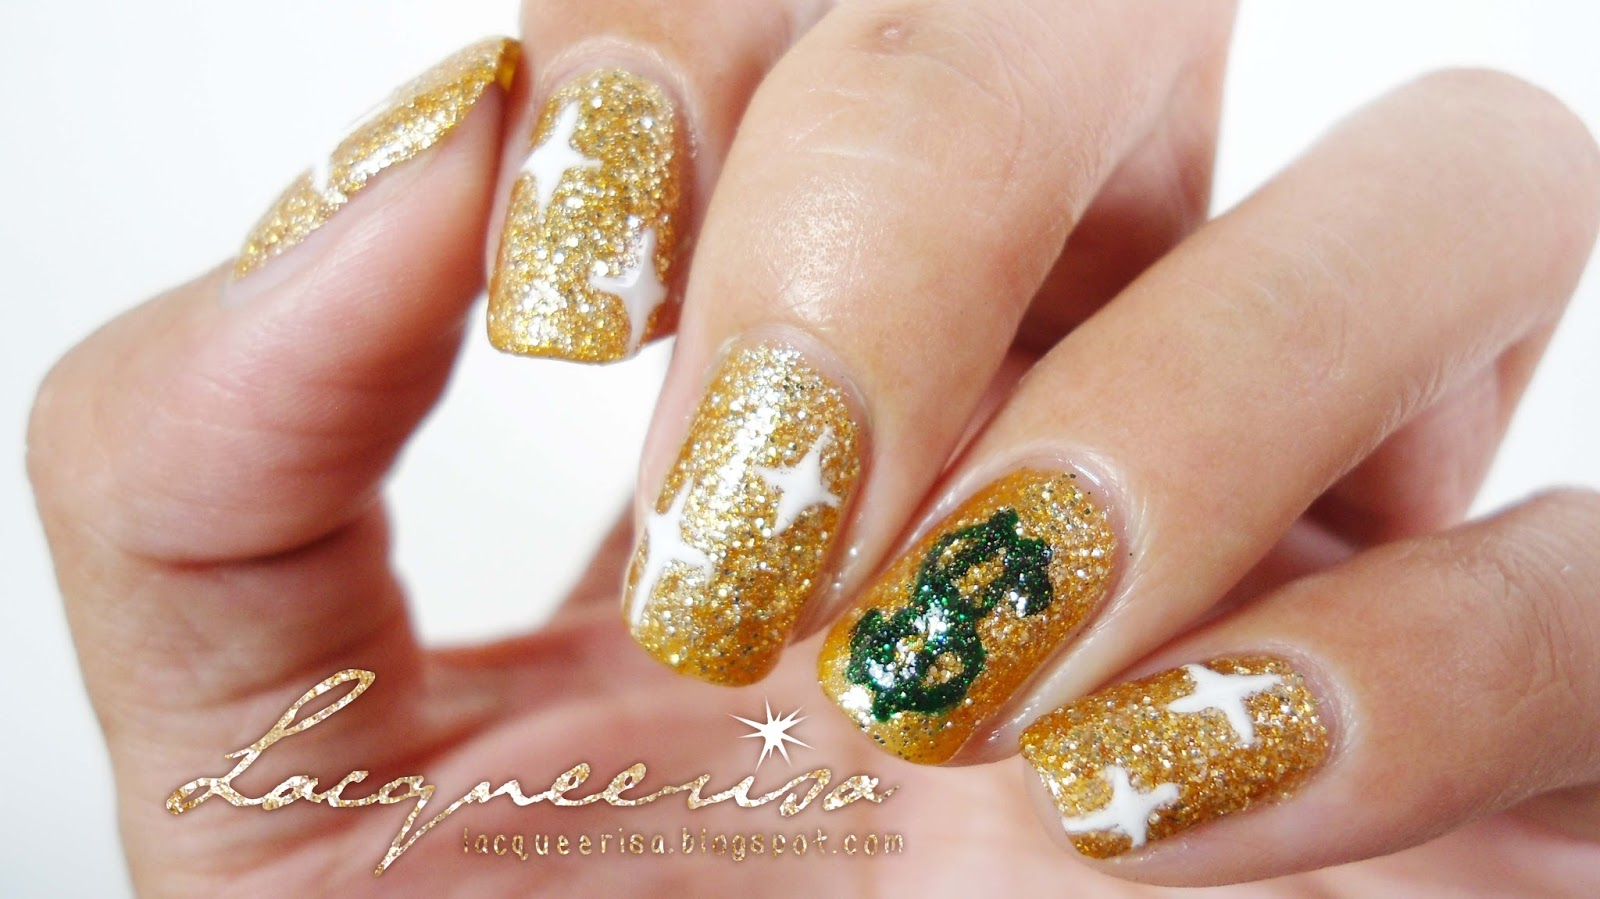 Lacqueerisa: Bling-Bling Nails!